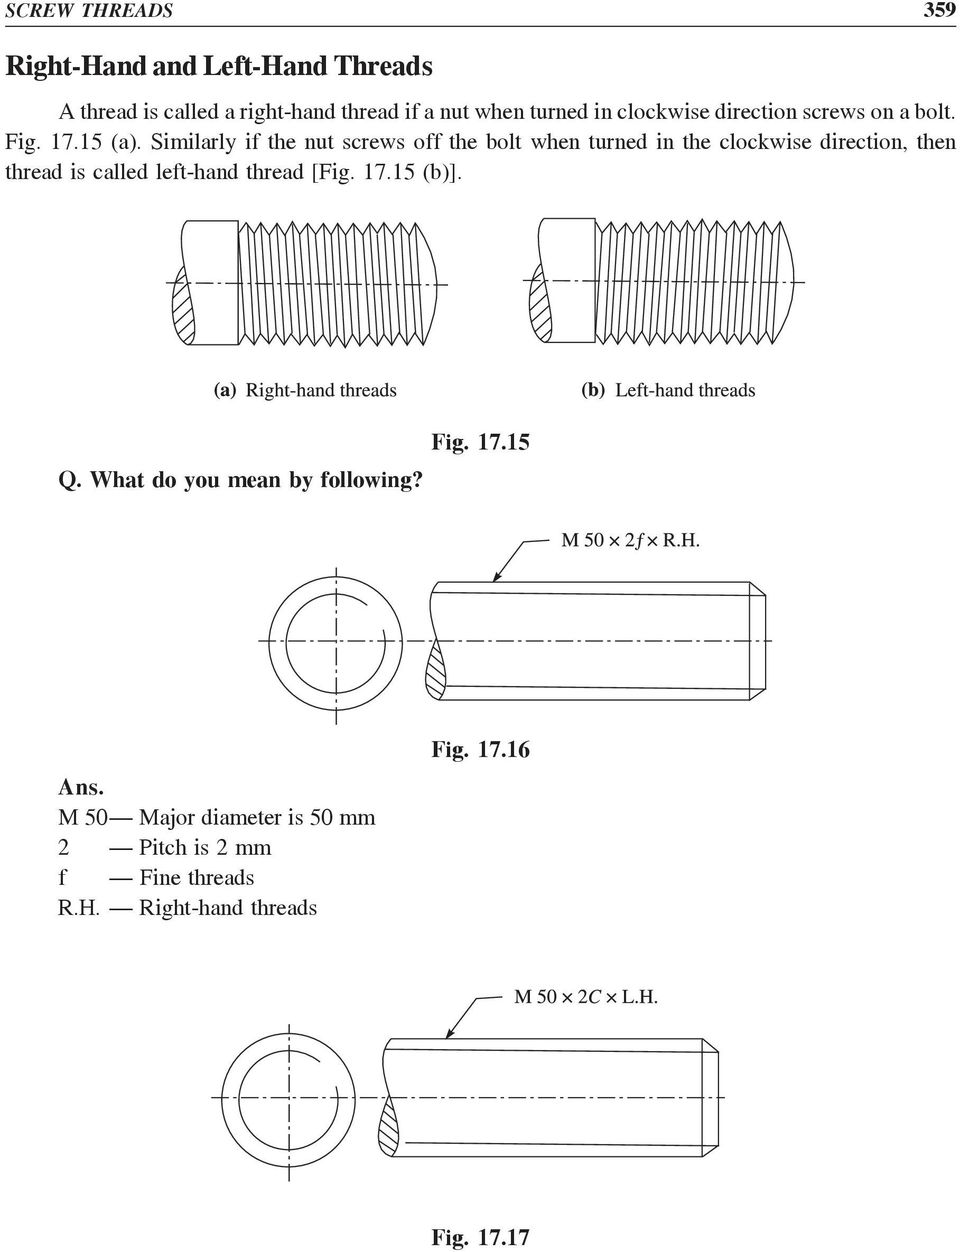 Similarly if the nut screws off the bolt when turned in the clockwise direction, then thread is called left-hand